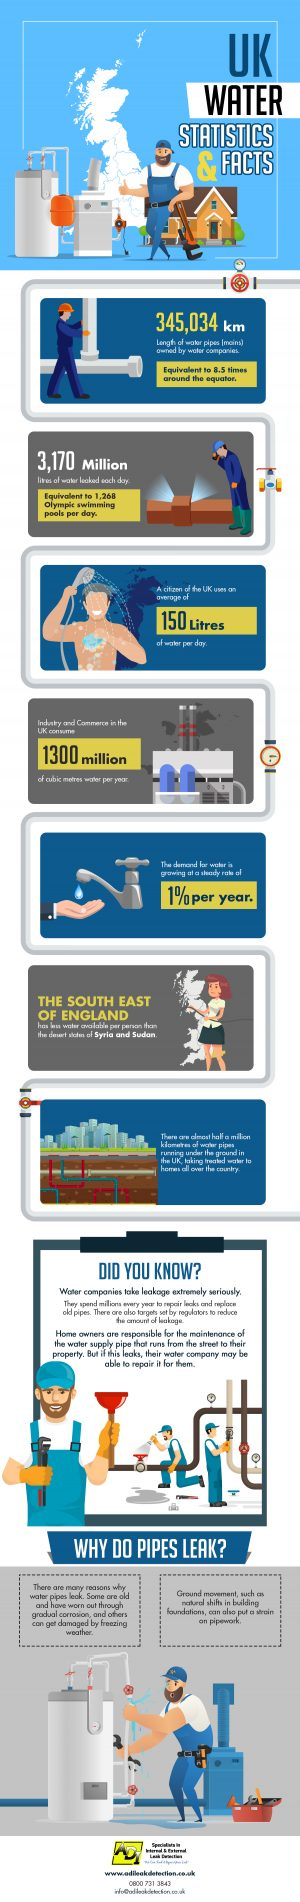 UK Water Statistics and Facts 2019